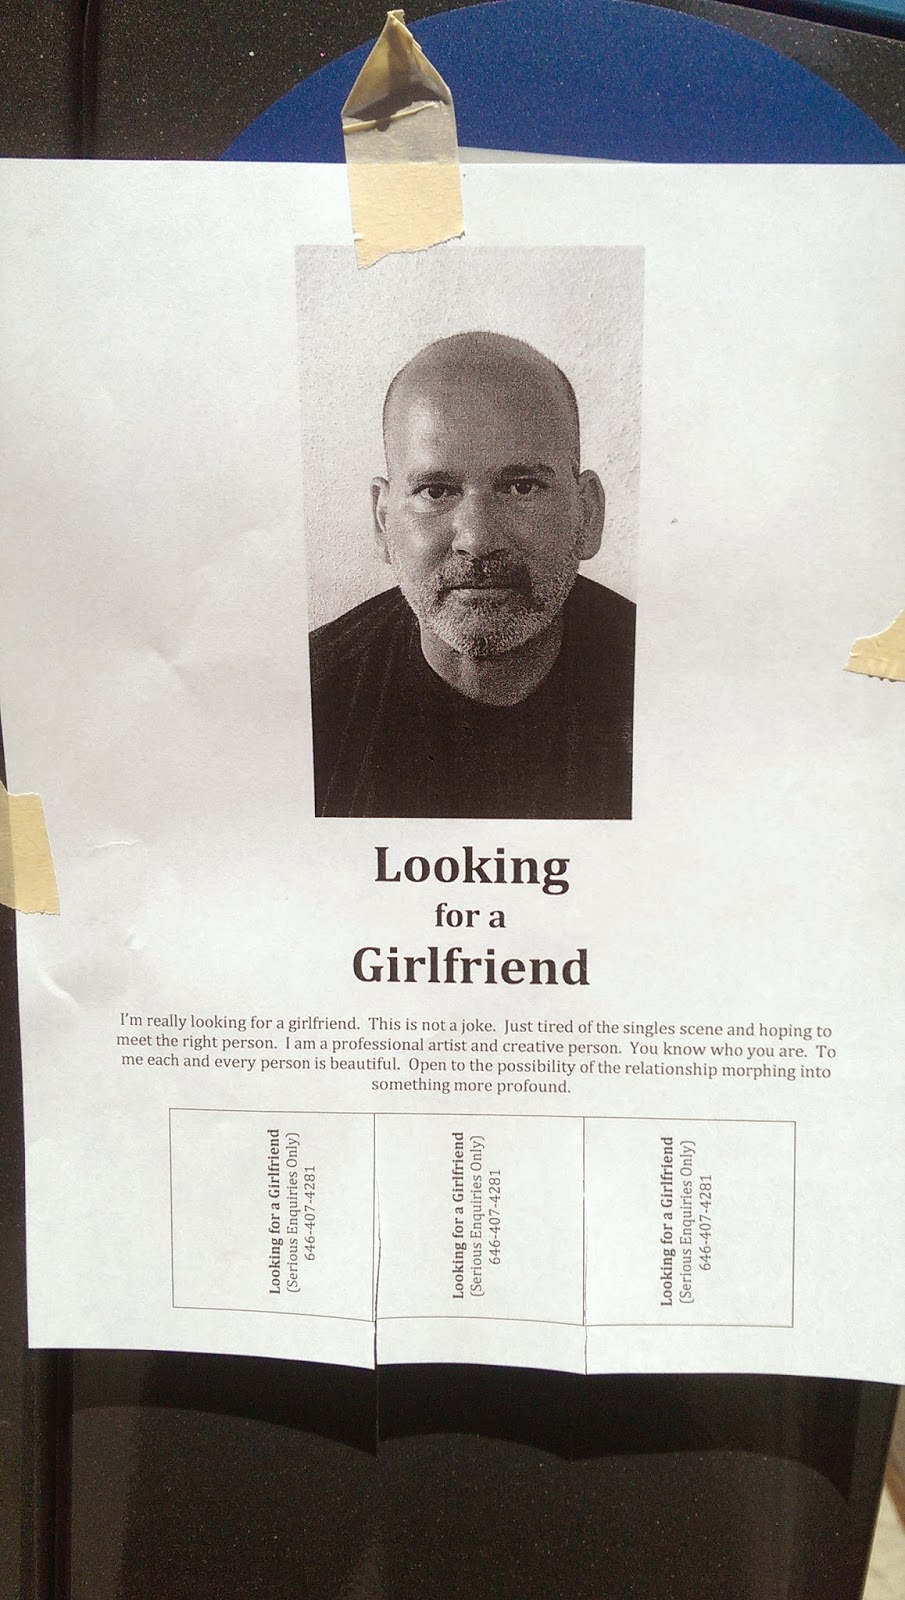 Guy looking for girlfriend in Chelsea